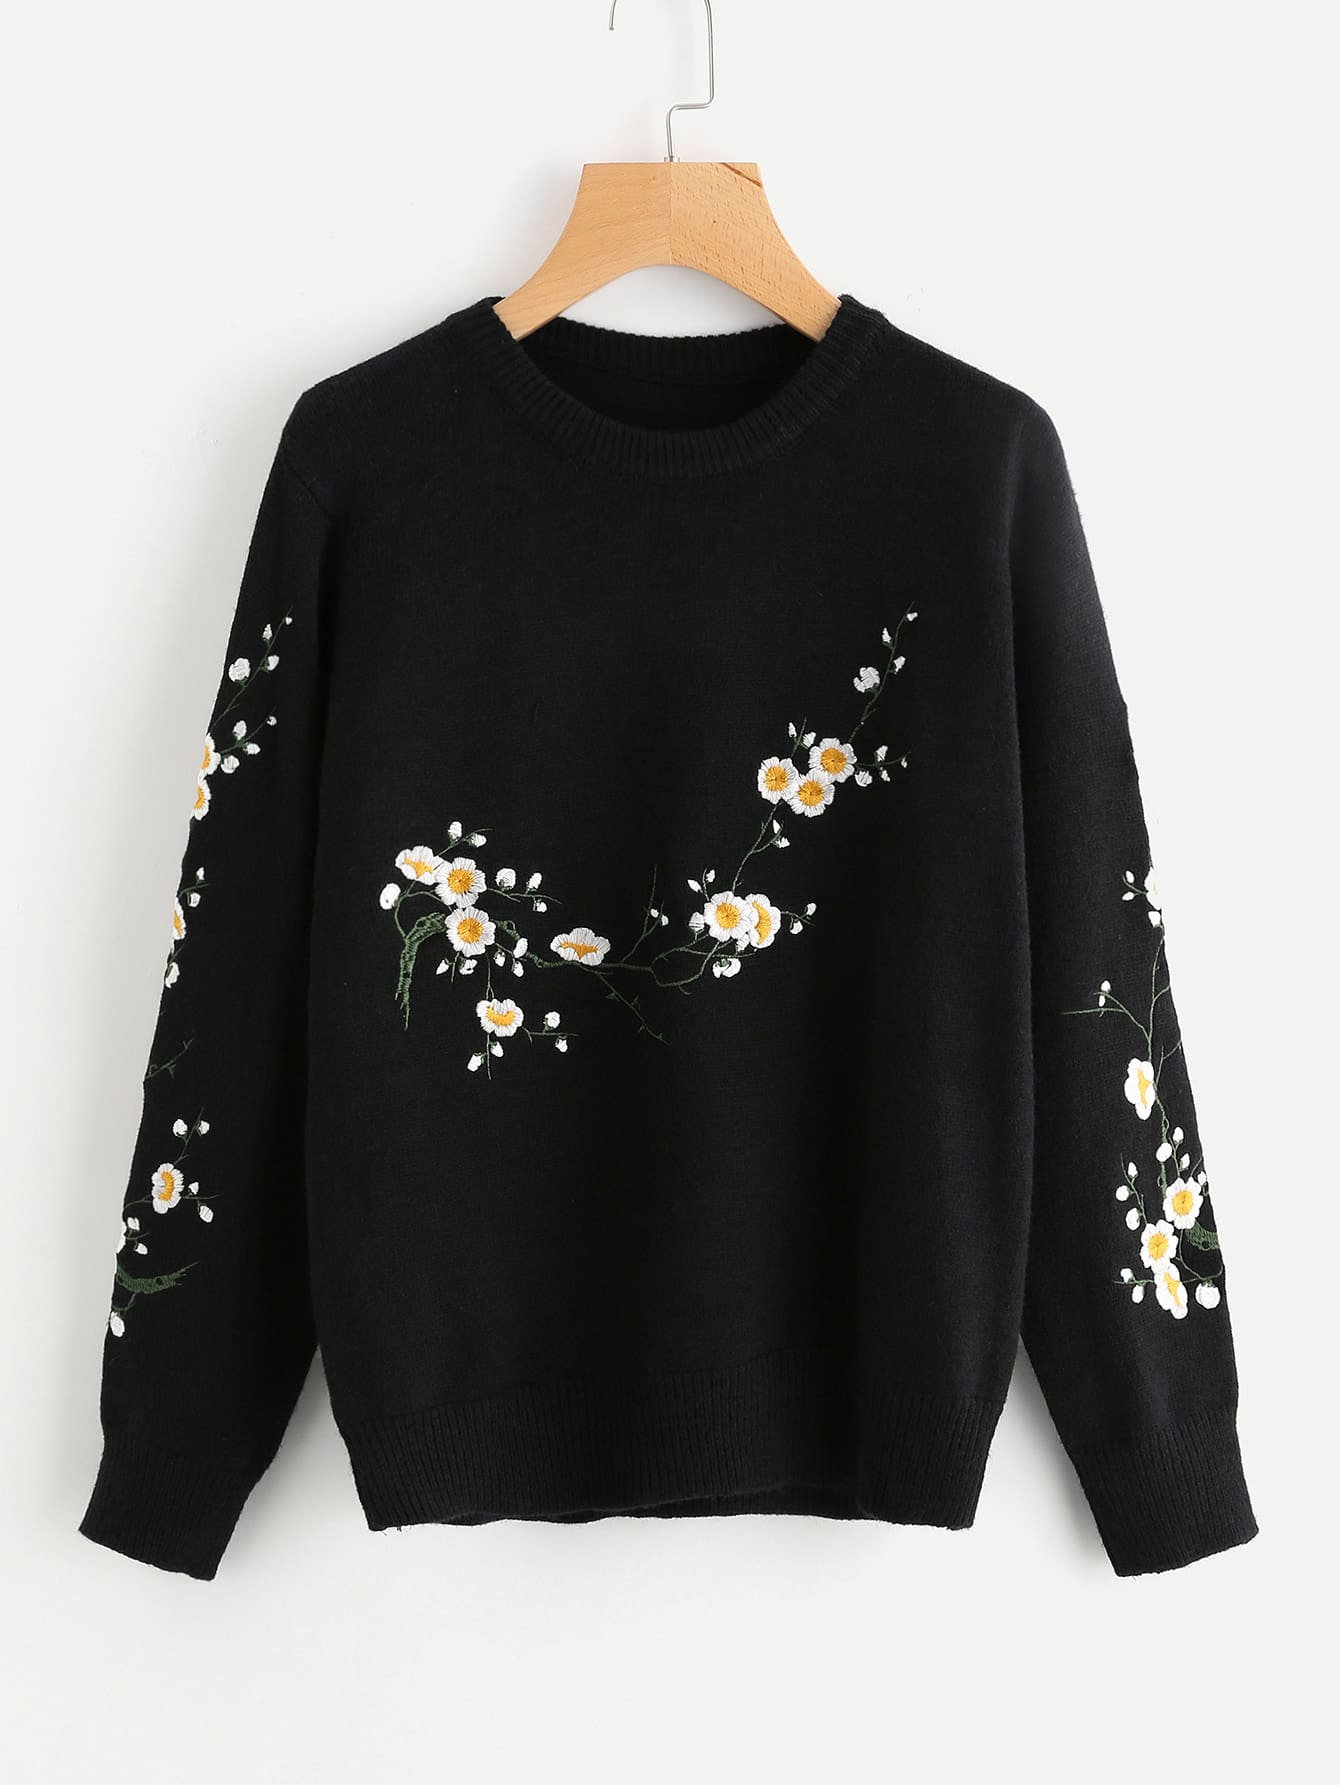 Flower Blossom Embroidered Sweater cartoon embroidered sweater